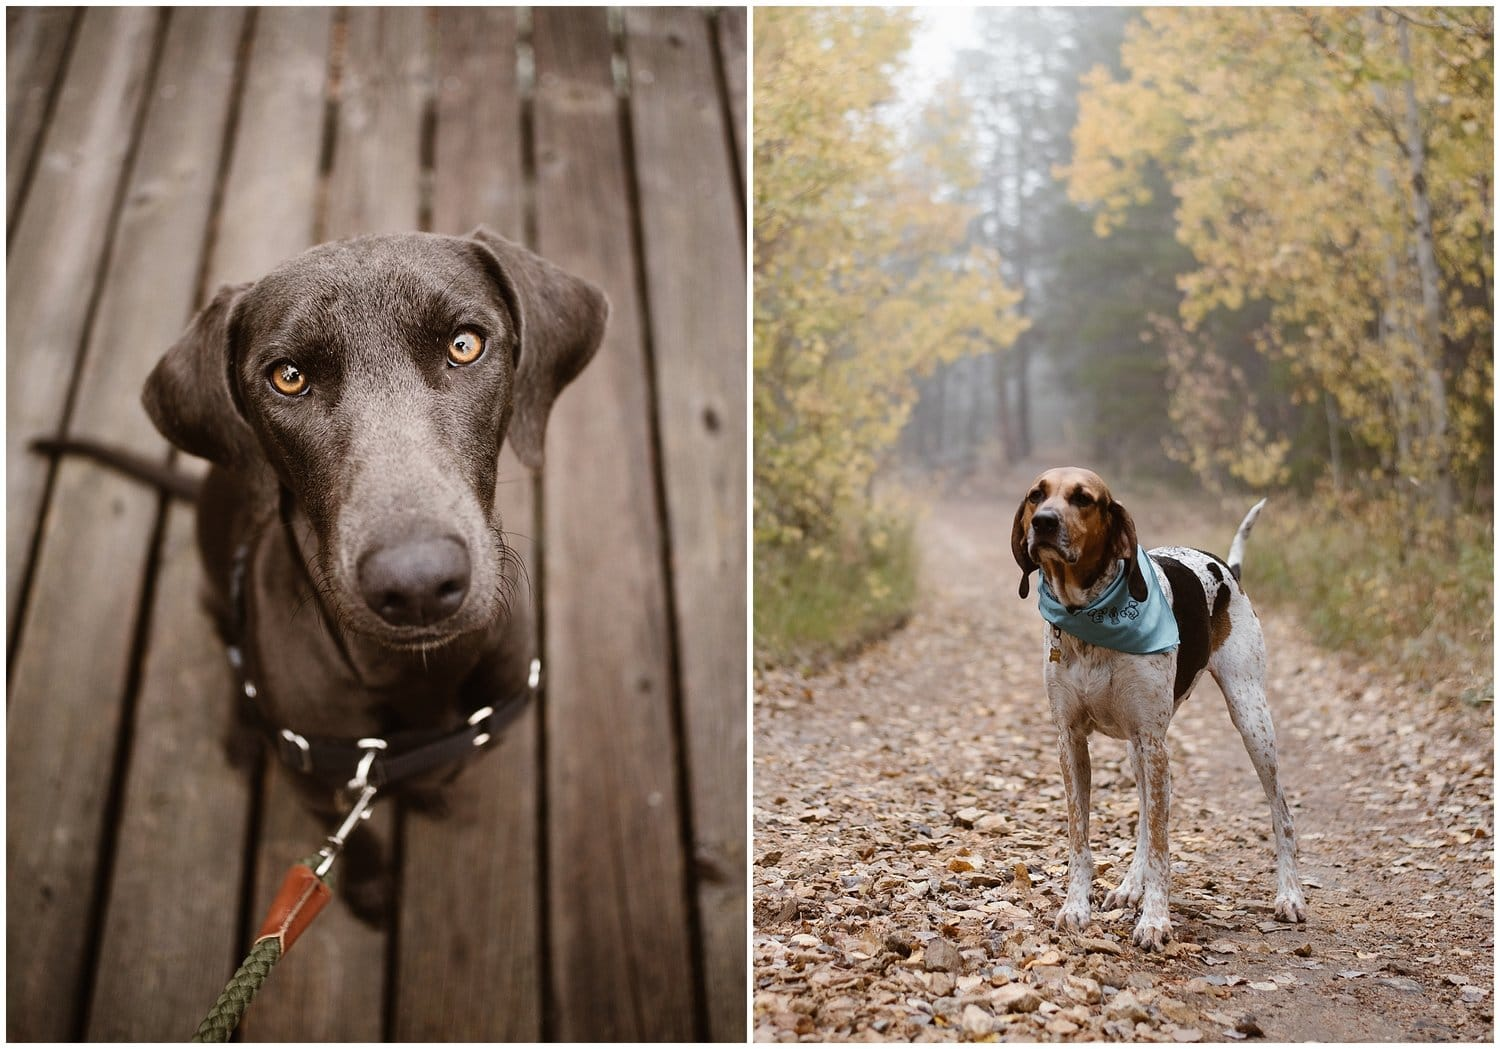 Two individual photos with a black dog on the left and a white and brown dog on the right.